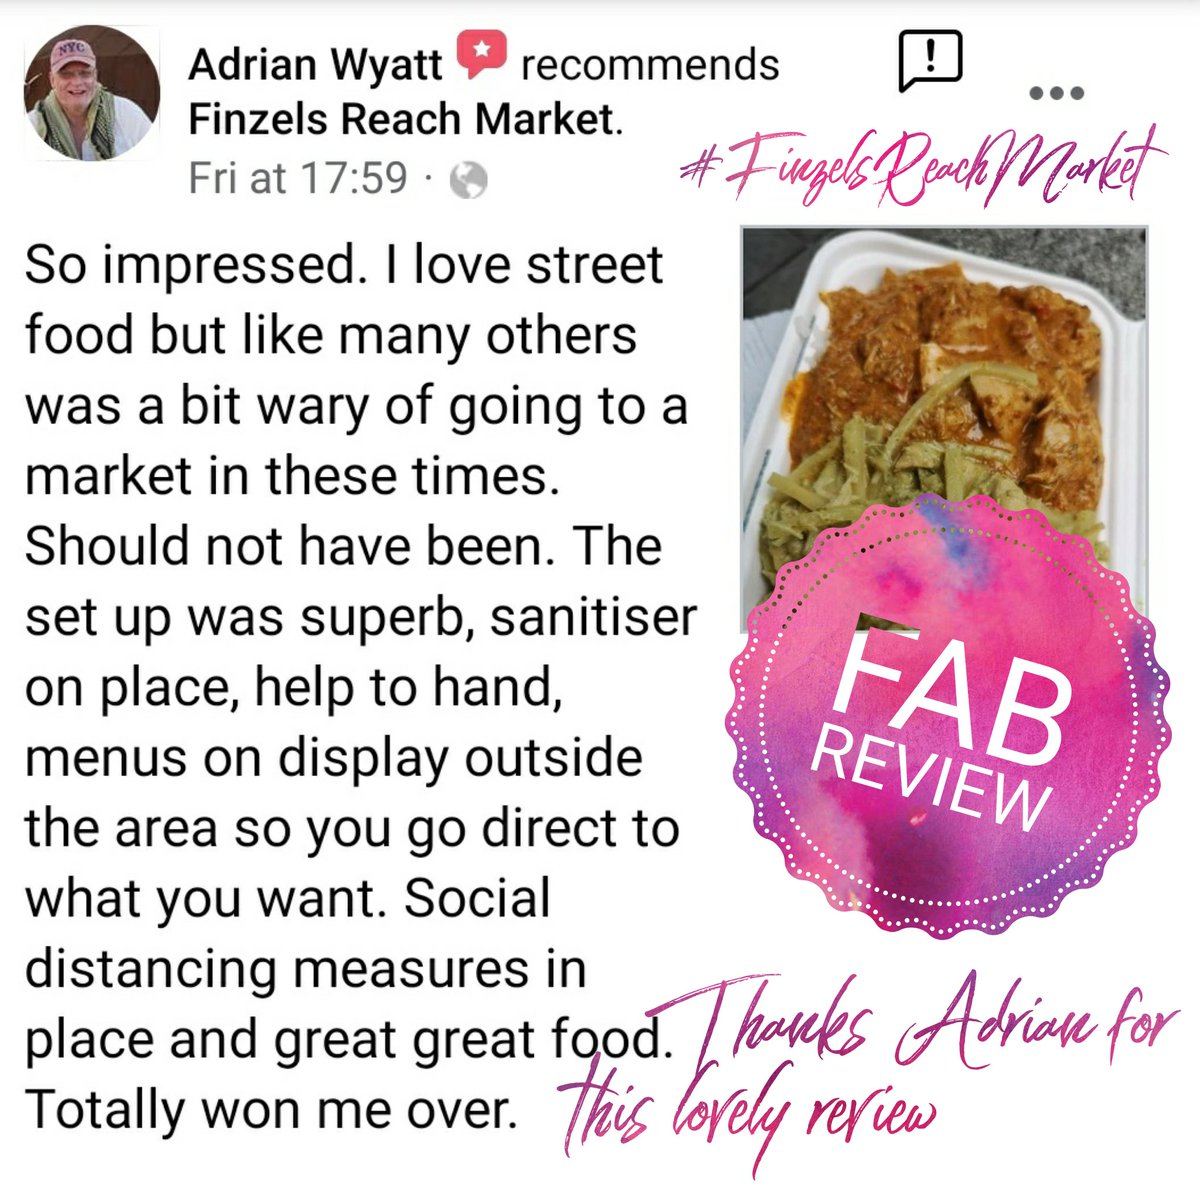 What a lovely review! Come see what all the fuss about with our weekly COVID secure street food market @FinzelsReach every Friday. #marketreview #mymarket #marketlife #streetfood #bristol #eventplanner #marketoperator #covidsecure #bristolfoodscene  #supportsmallbiz #foodiespic.twitter.com/ii9Y8RqL71